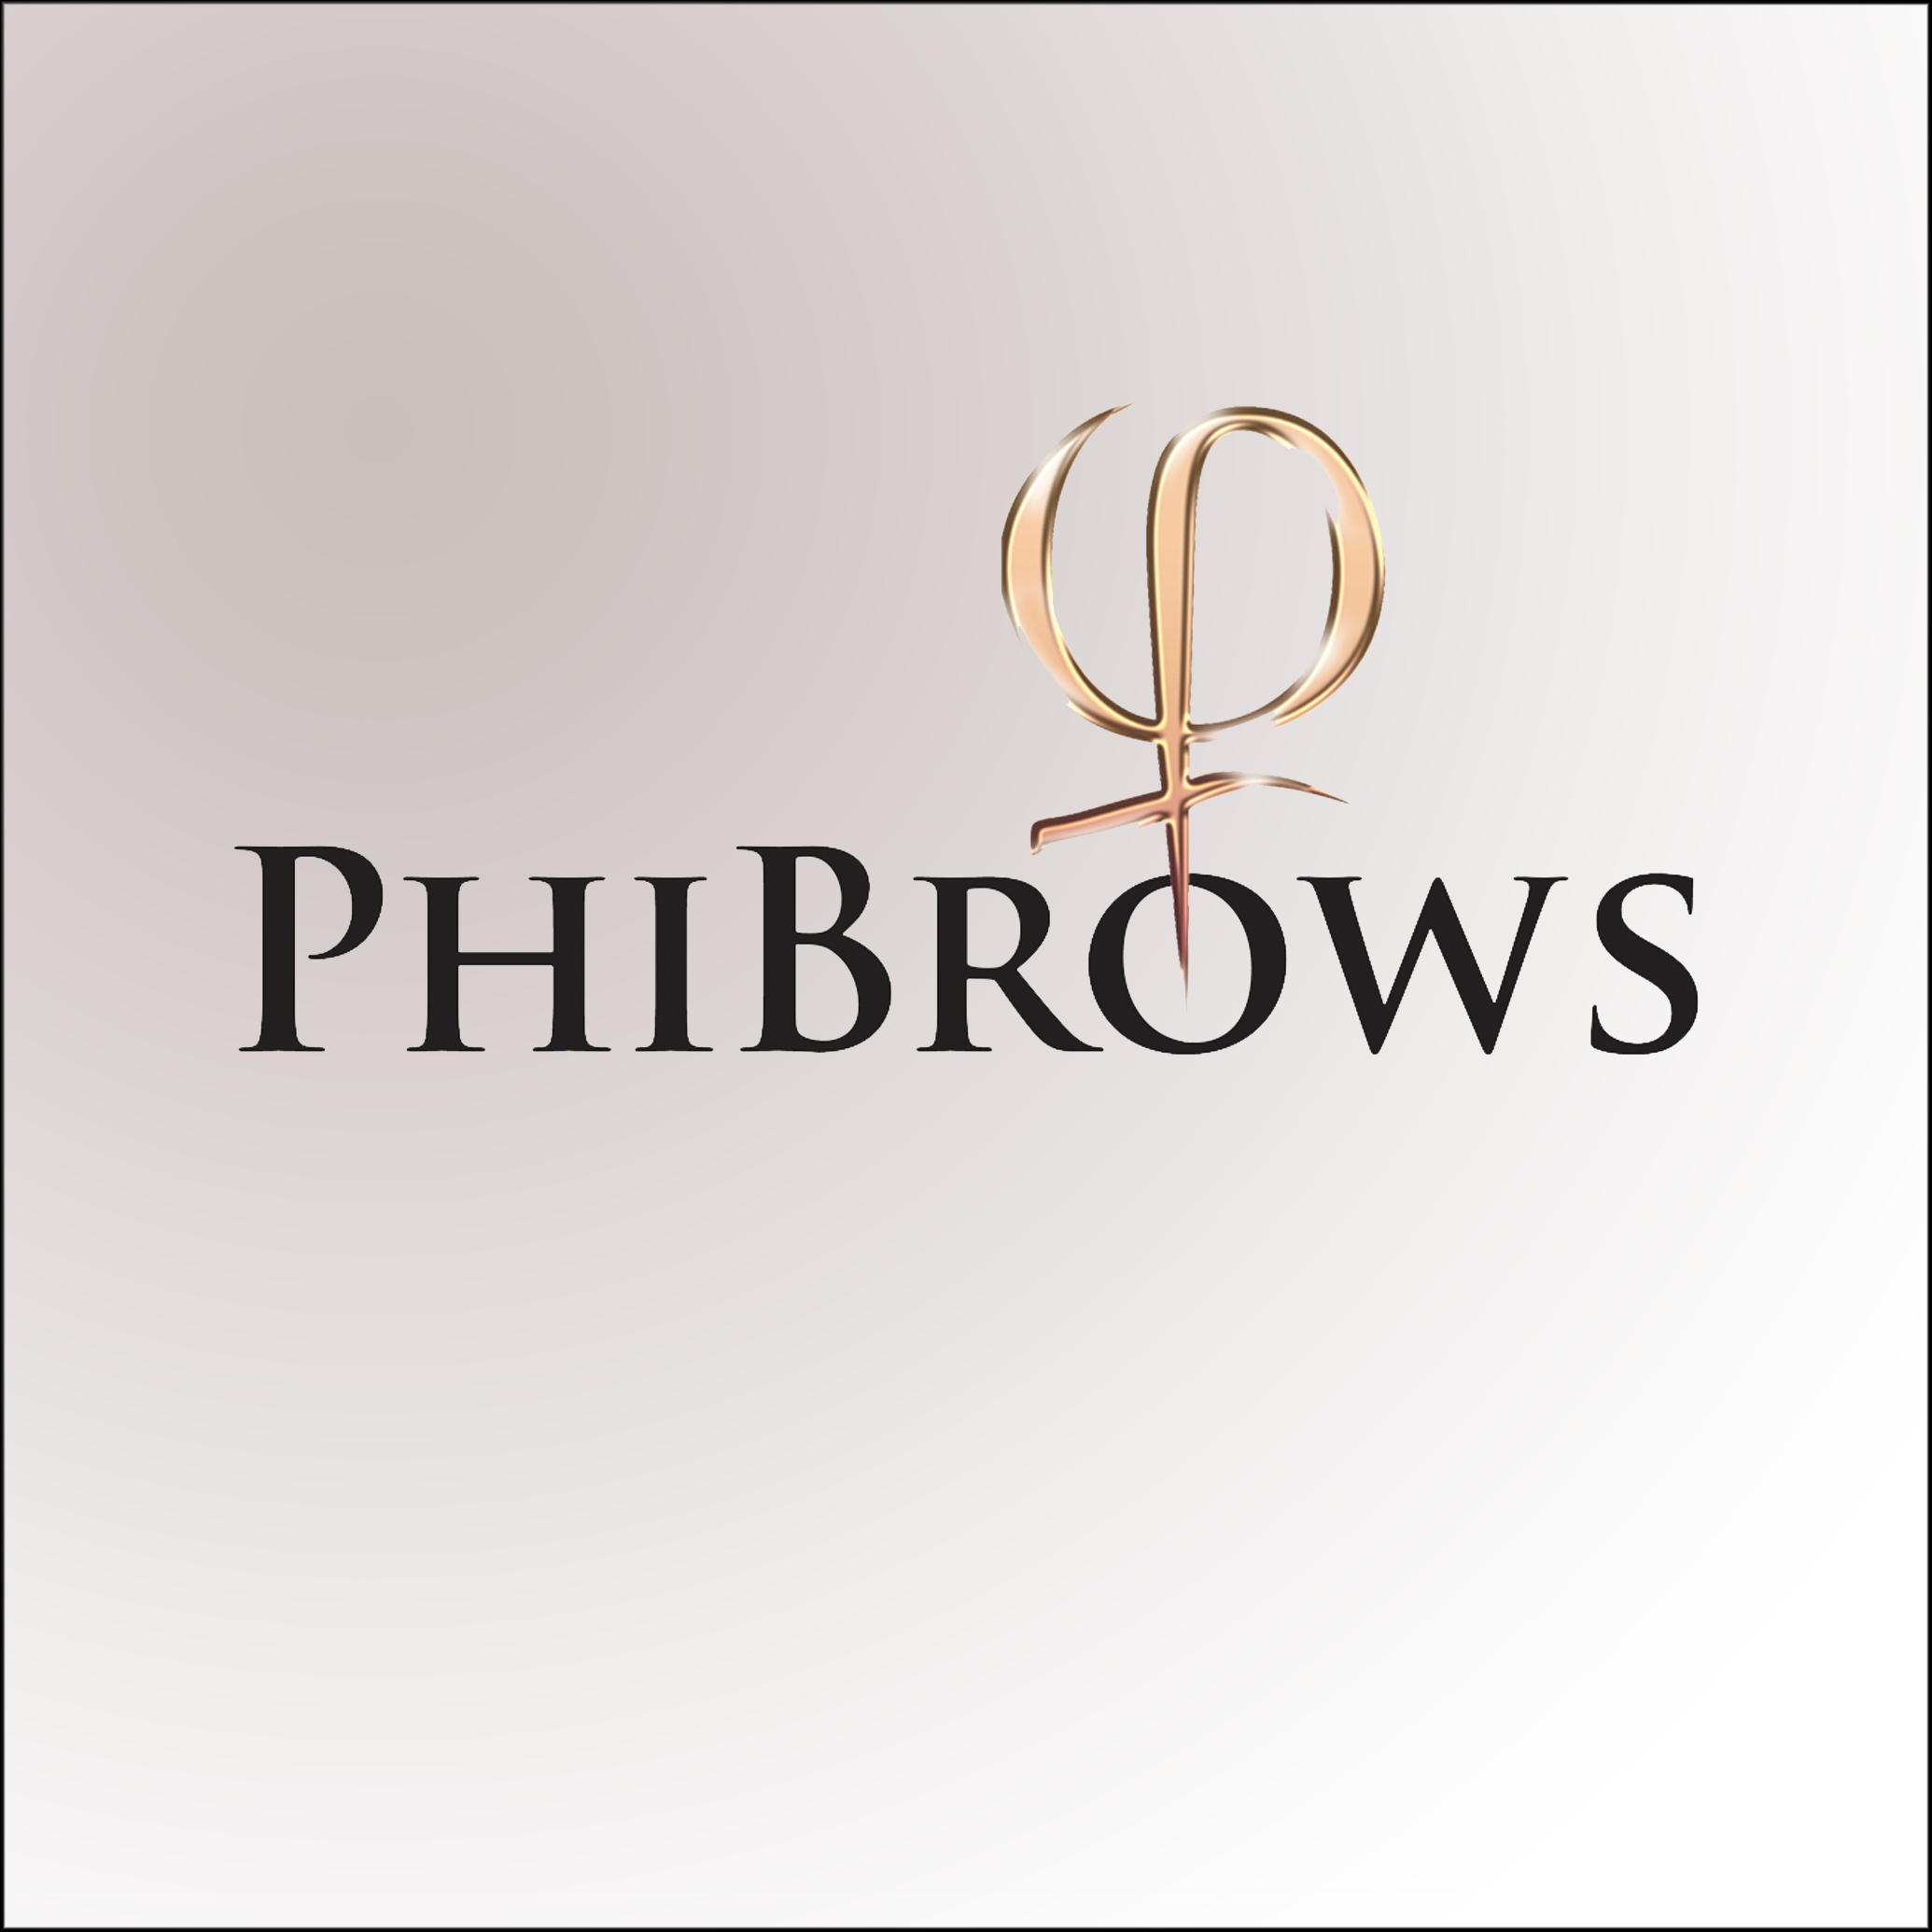 GALLERY LOGO BROWS LIGHT.png